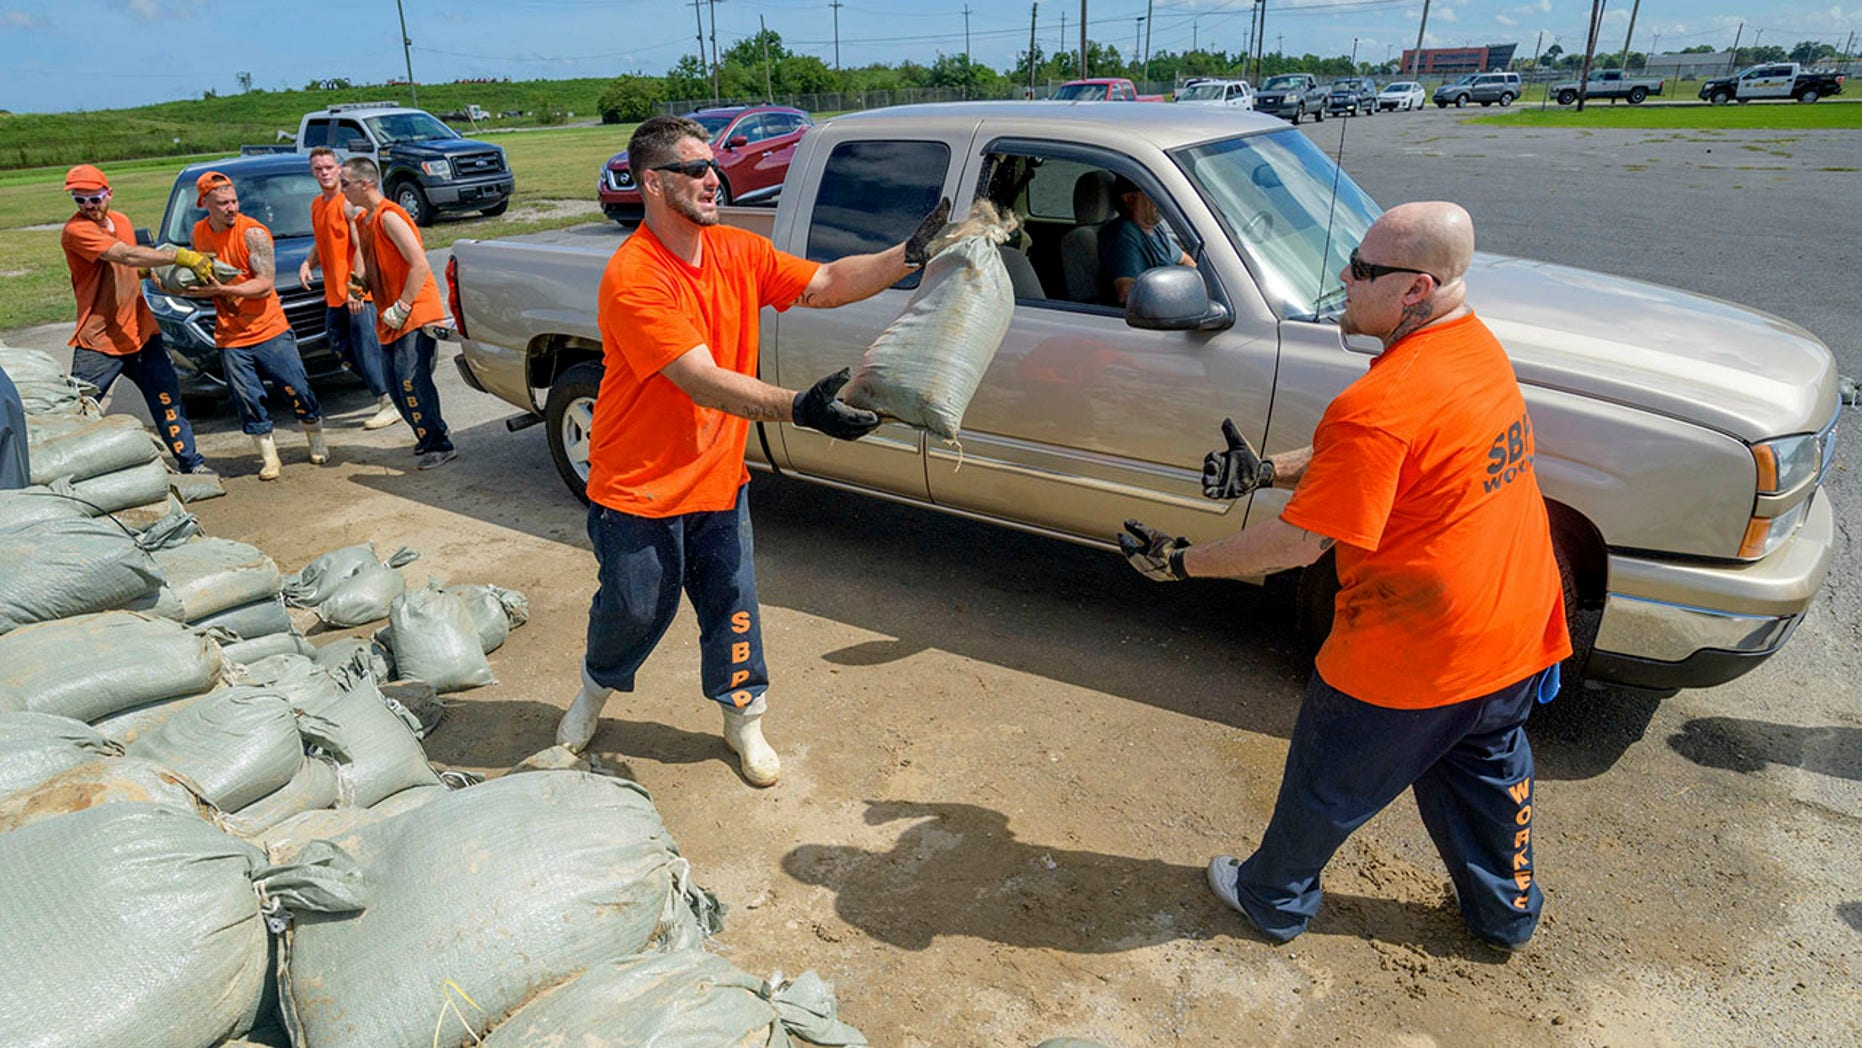 Employees at the St. Bernard Parish Sheriff's Office move free sandbags to residents of Chalmette, Louisiana on Thursday, July 11, 2019, in front of Tropical Storm Barry in the Gulf of Mexico. (AP Photo / Matthew Hinton)